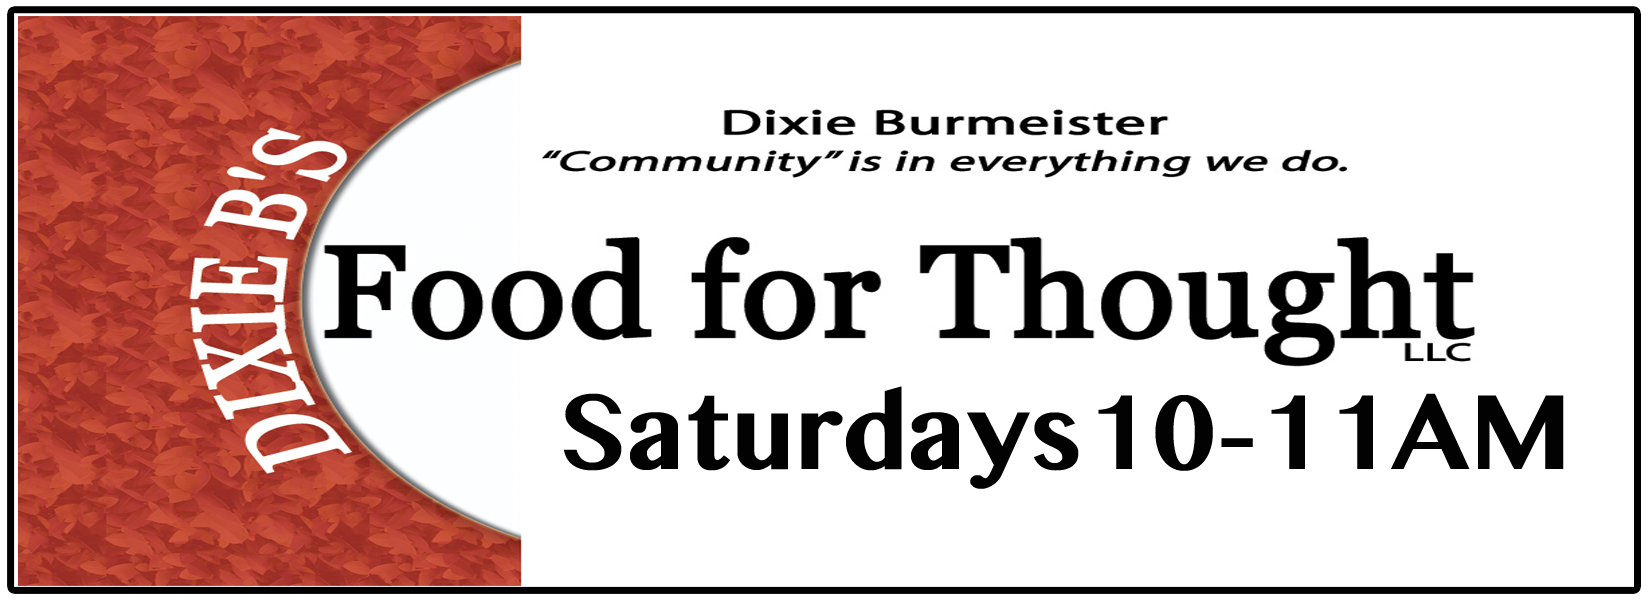 Food for Thought with Dixie Burmeister